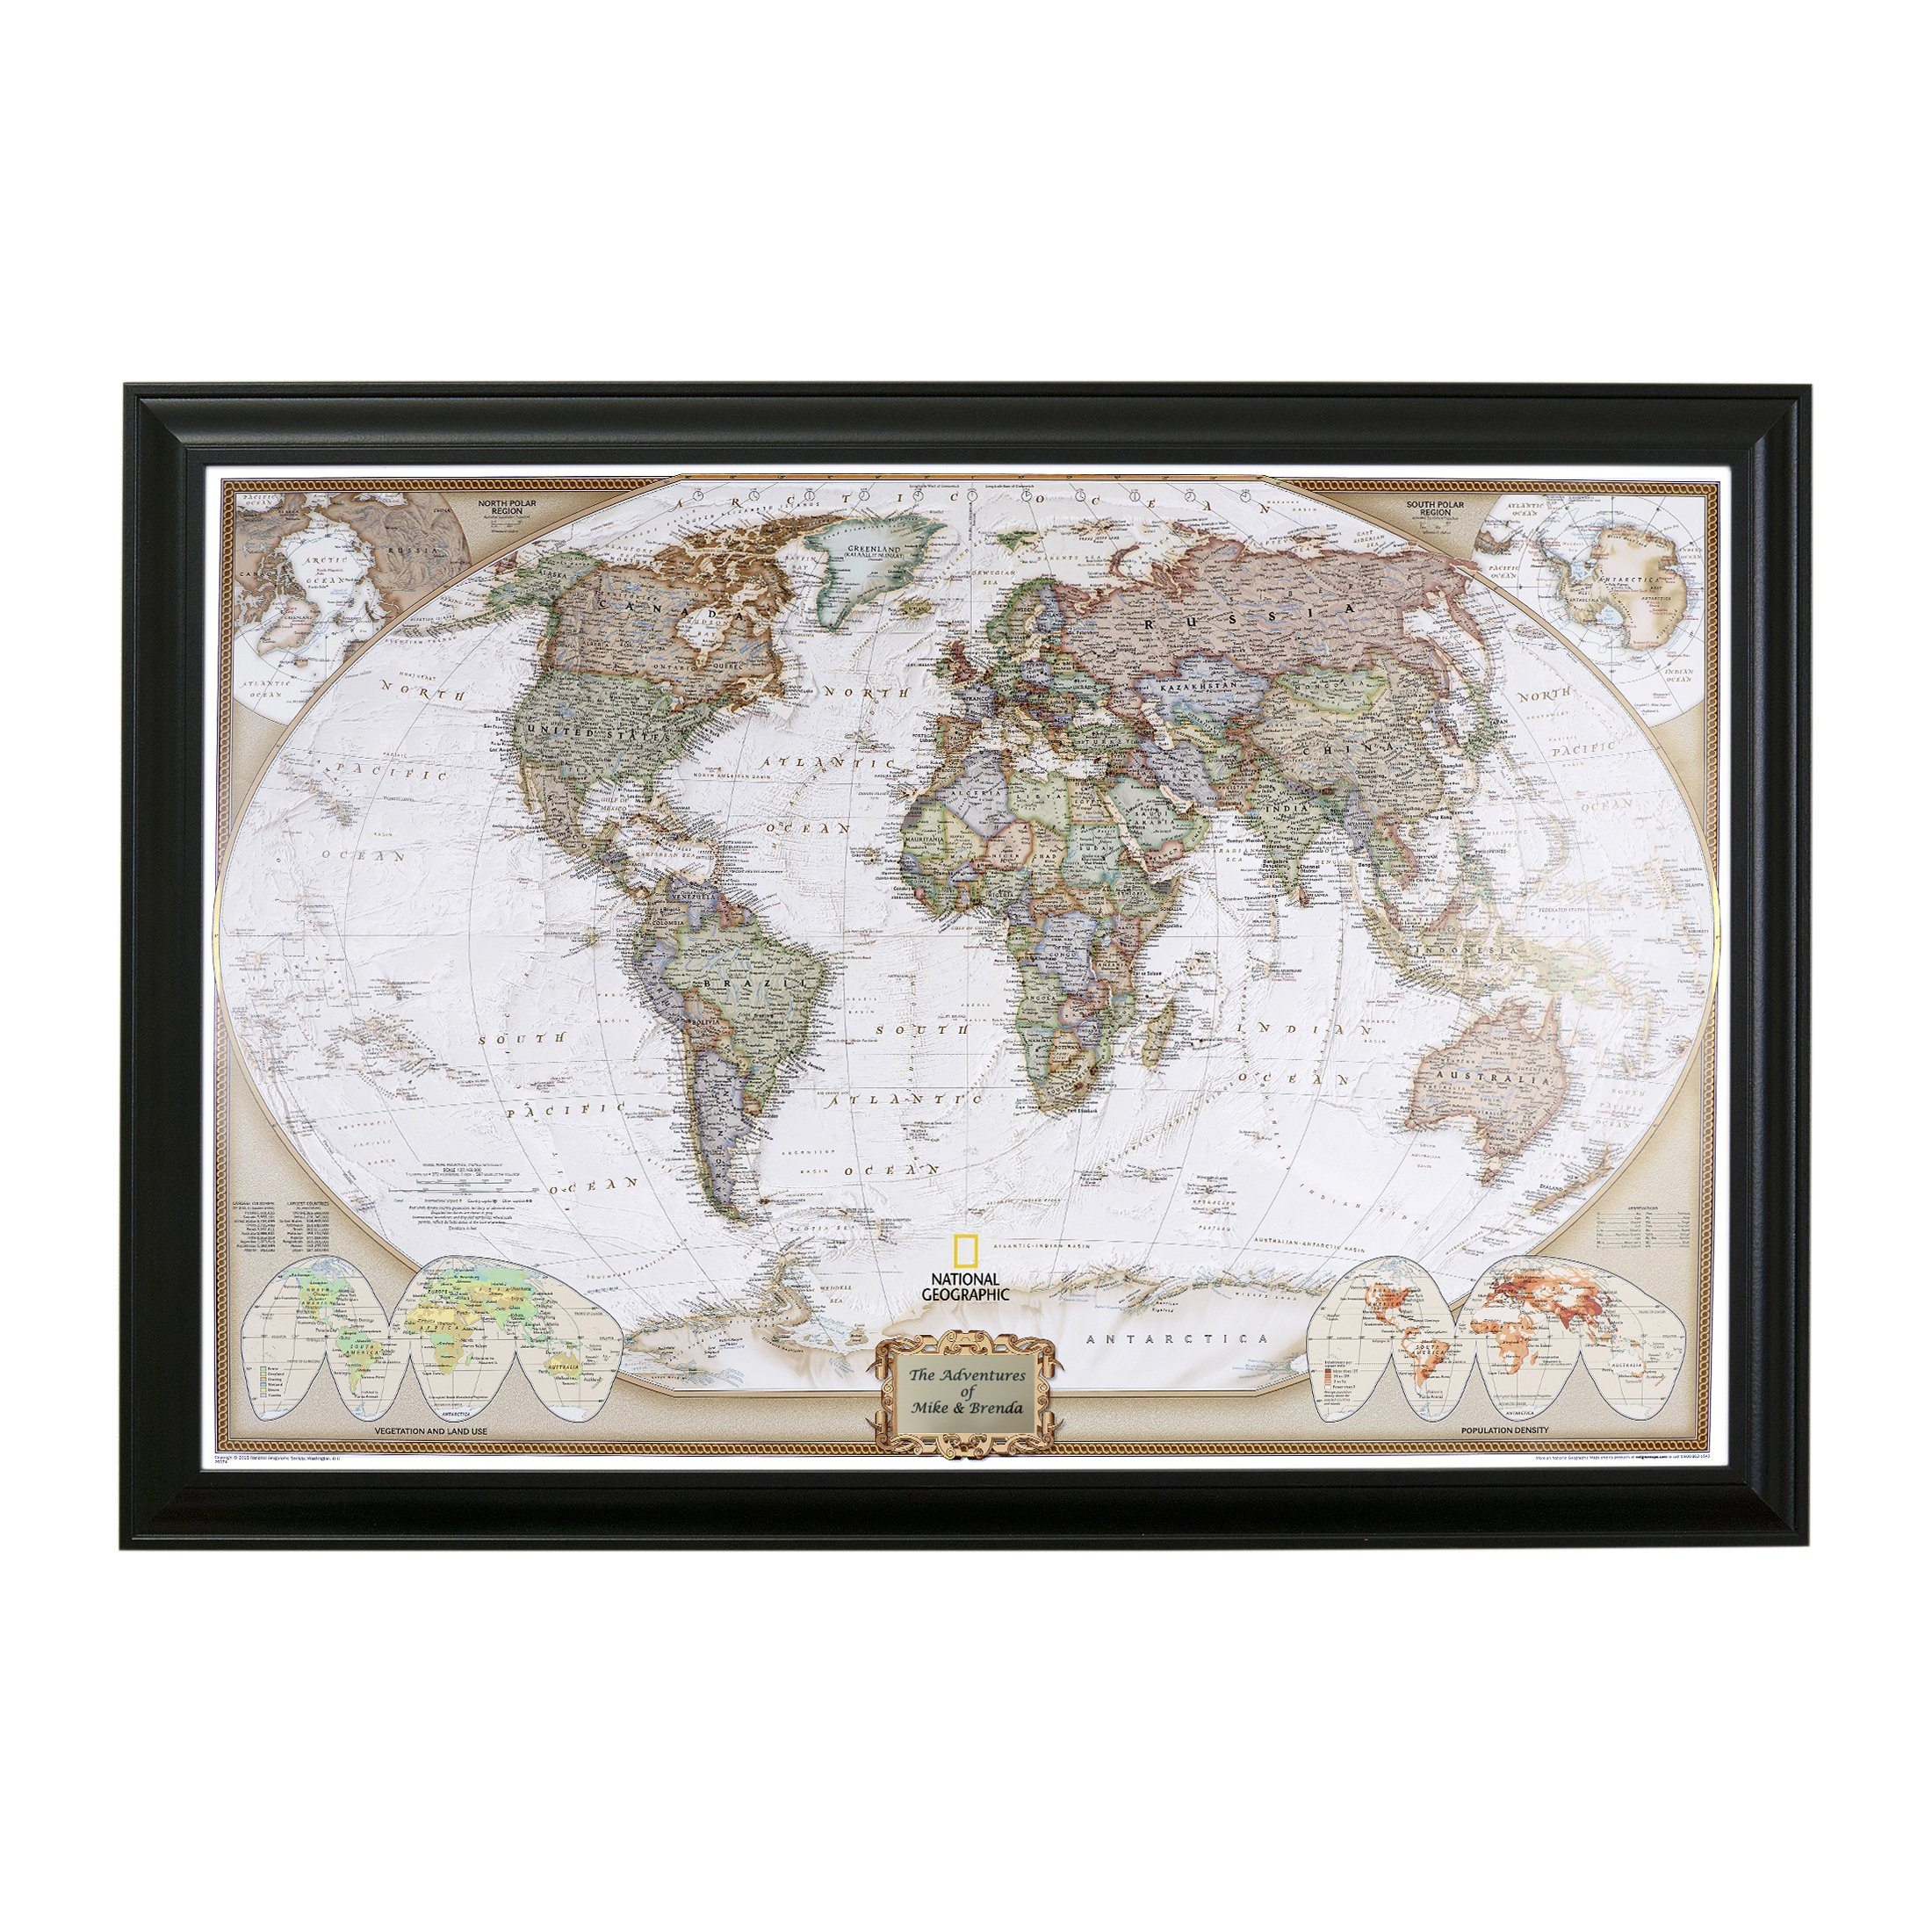 Personalized Executive World Push Pin Travel Map with Black Frame and Pins 24 x 36 by Push Pin Travel Maps